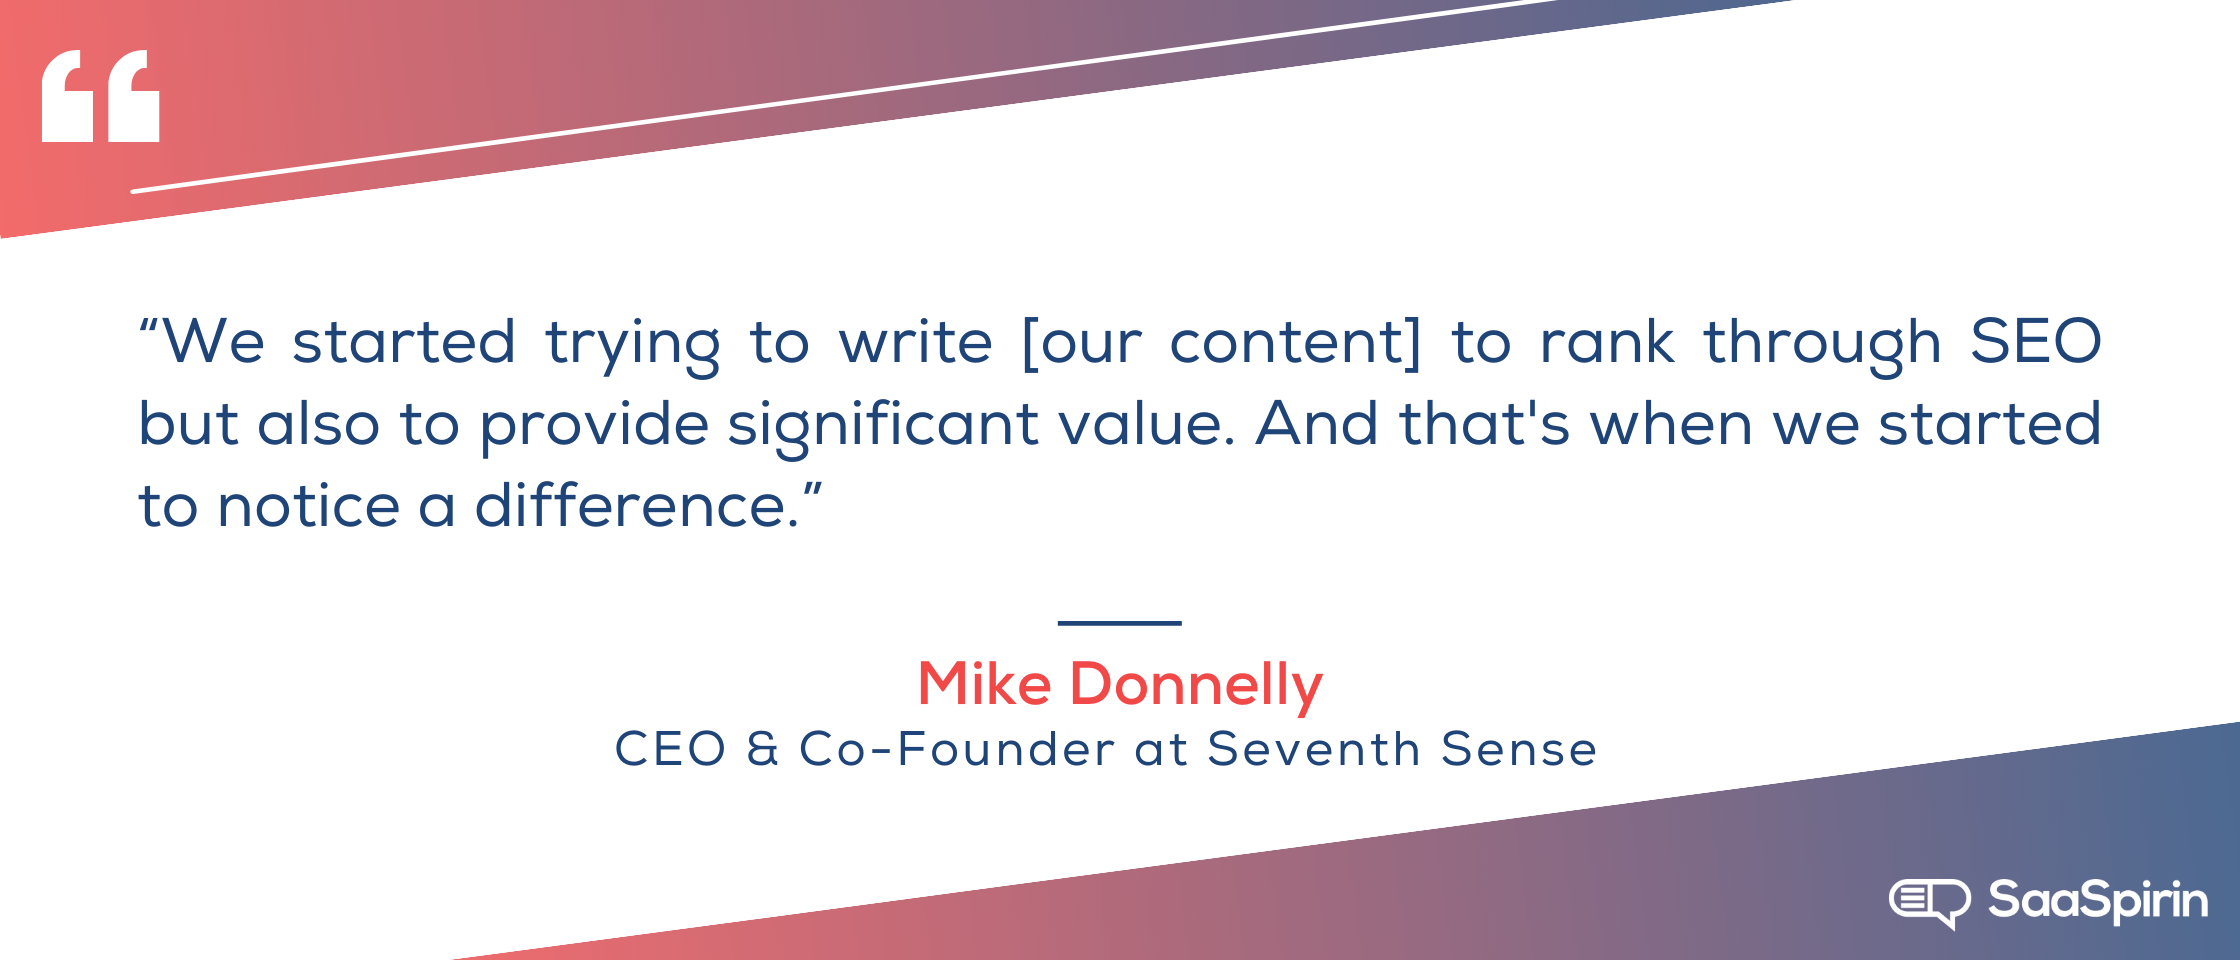 We-started-trying-to-write-our-content-to-rank-through-SEO-but-also-to-provide-significant-value-And-thats-when-we started-to-notice-a-difference.png